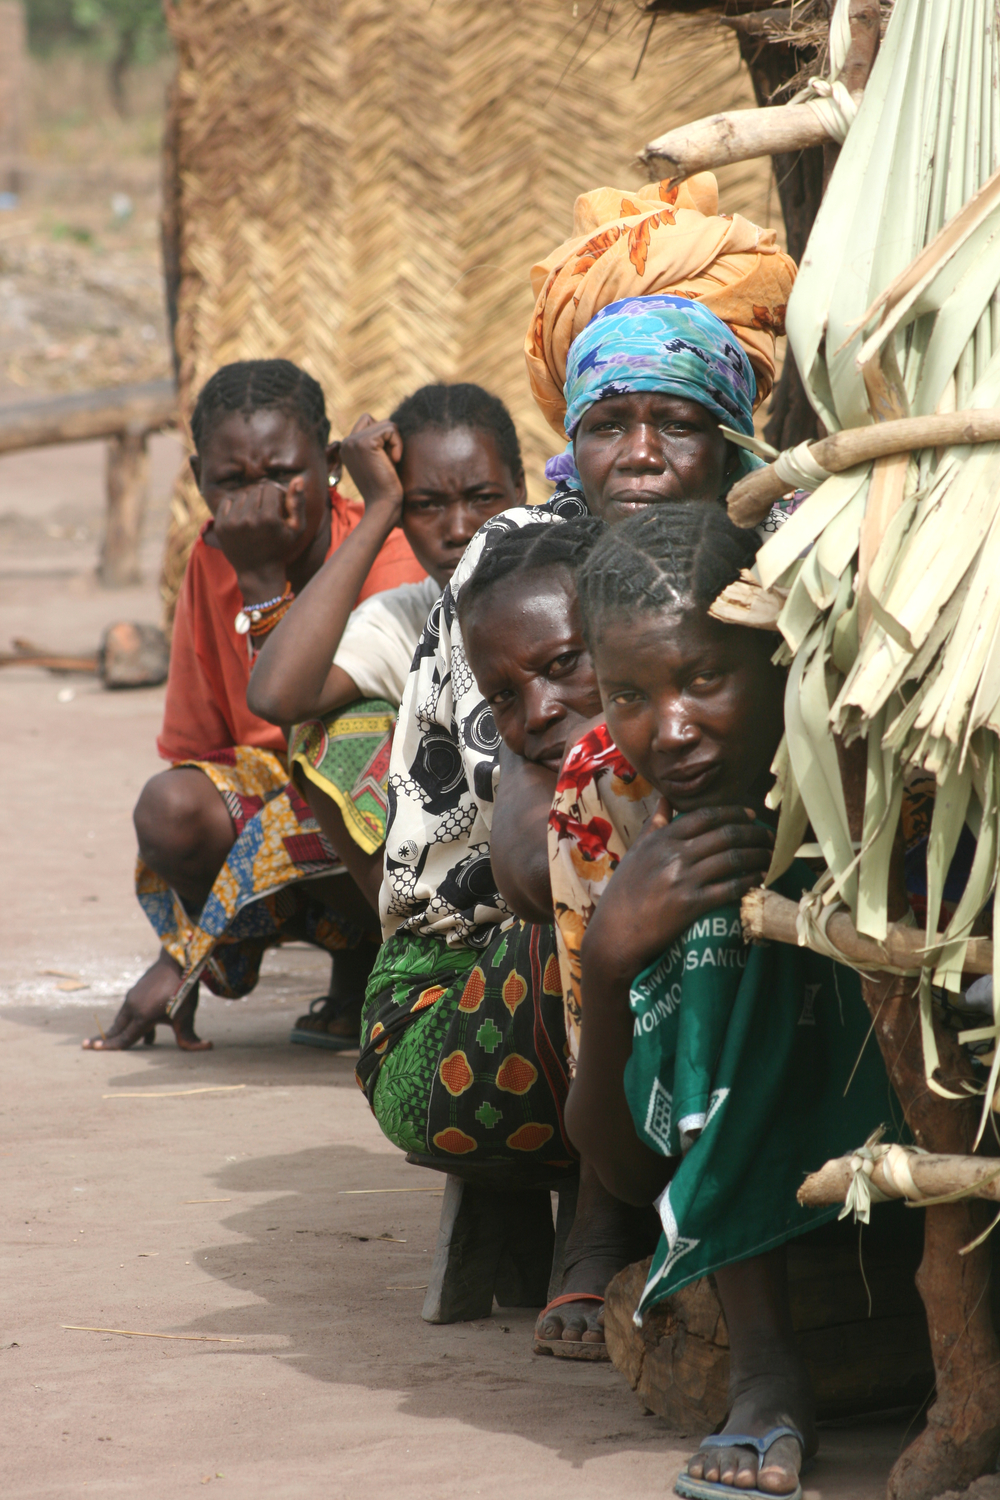 Women in the only site for internally displaced people in CAR, located in the town of Kabo. March 2008